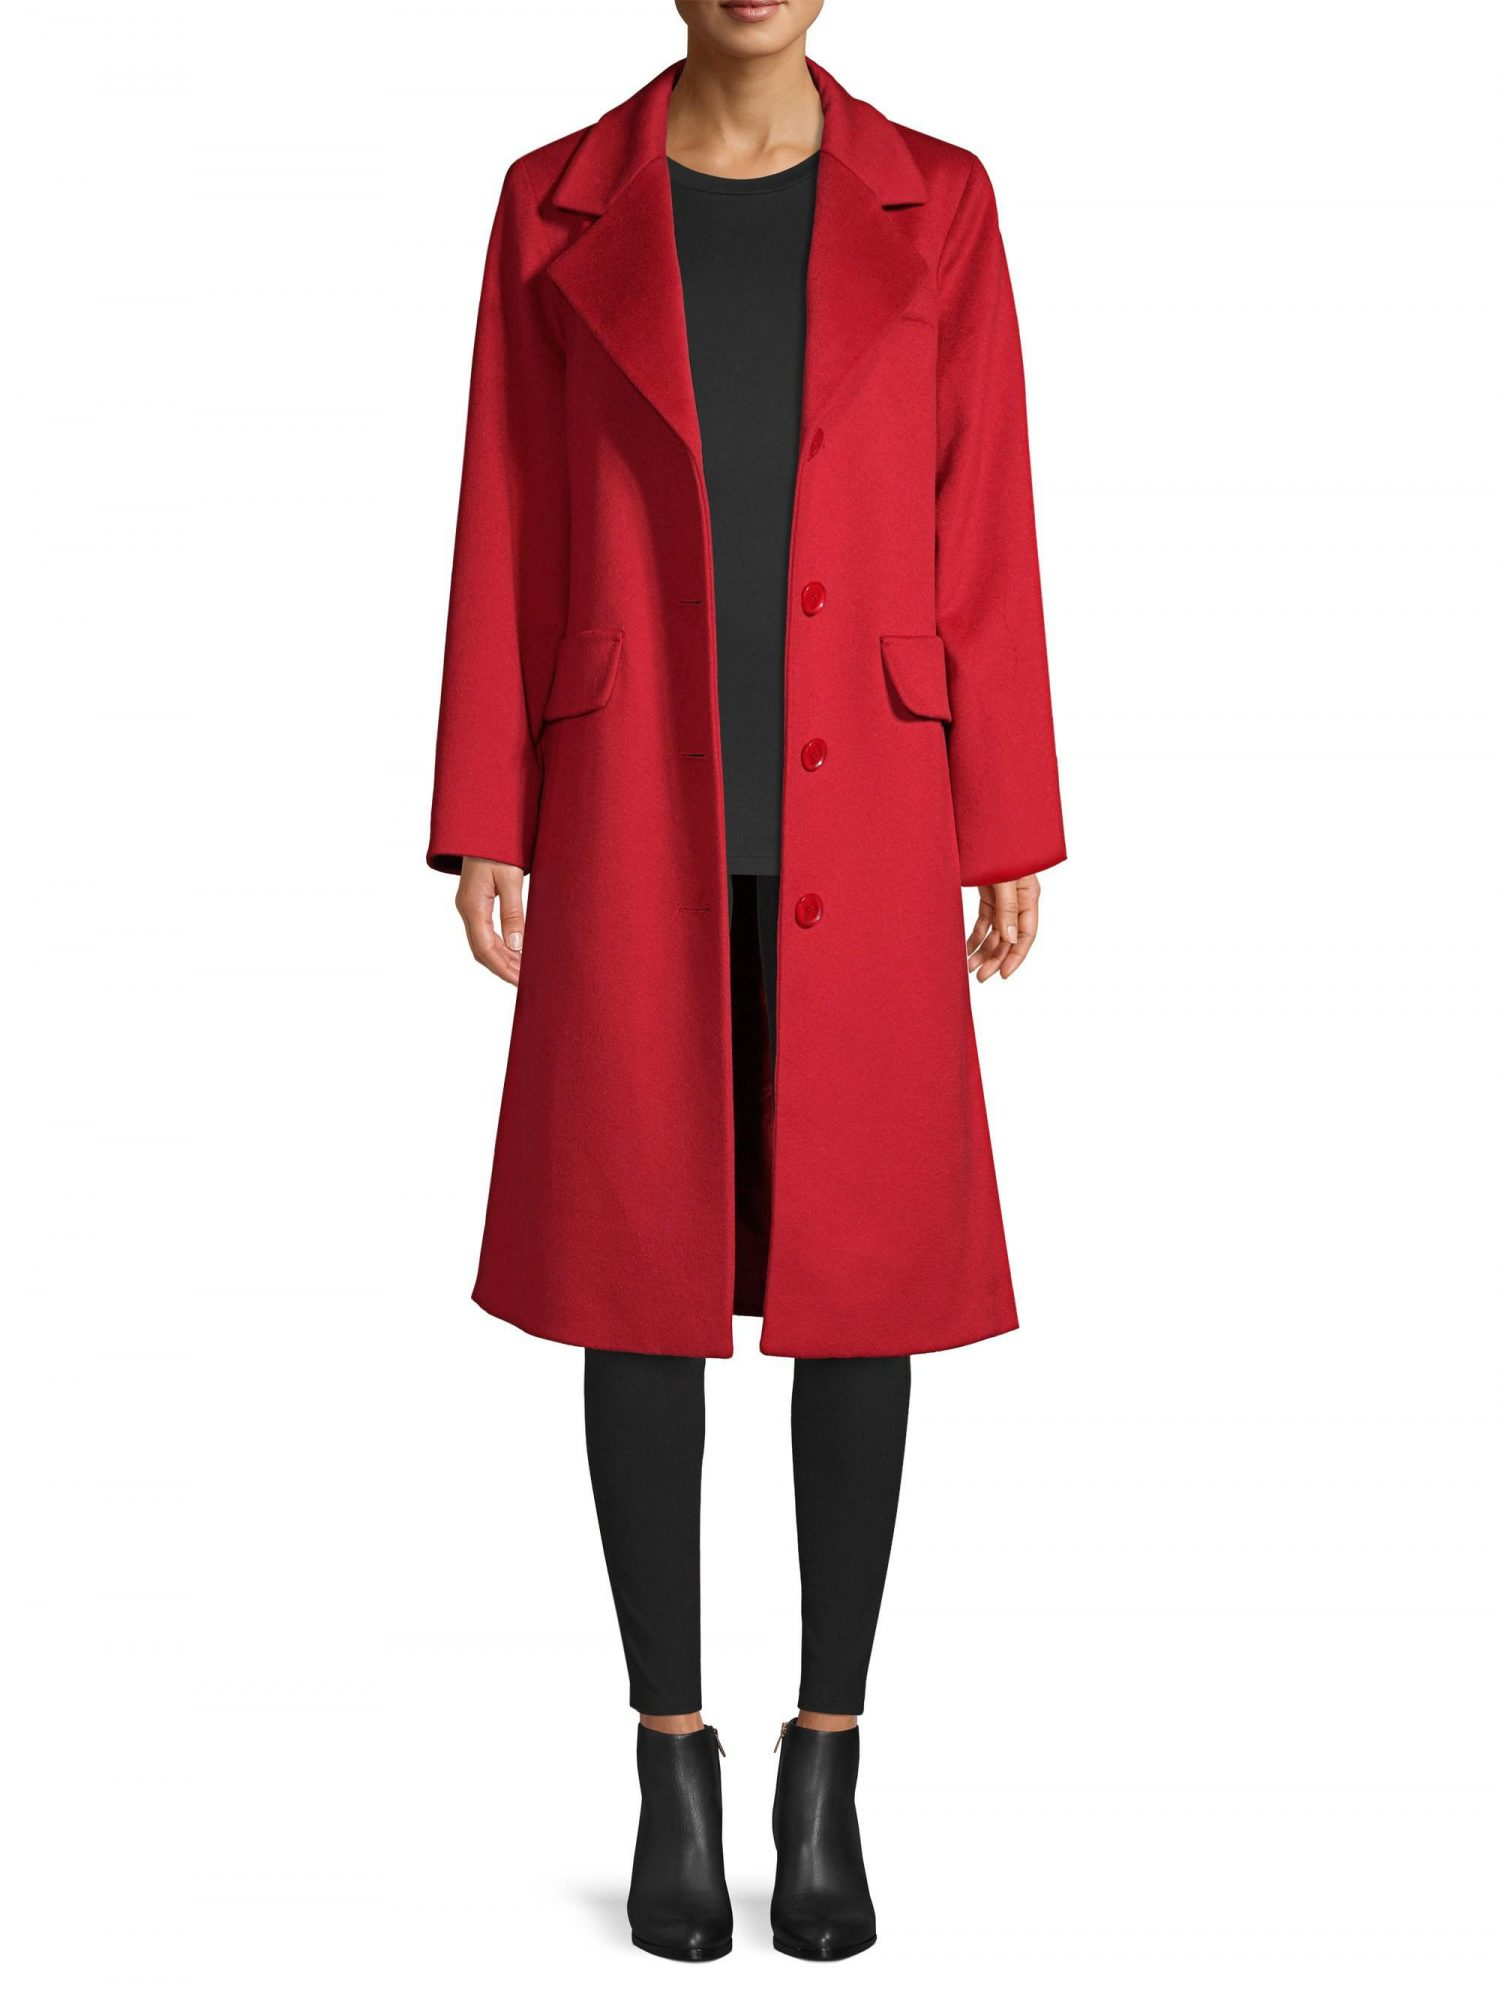 sofia-cashmere-red-wool-cashmere-button-front-coat